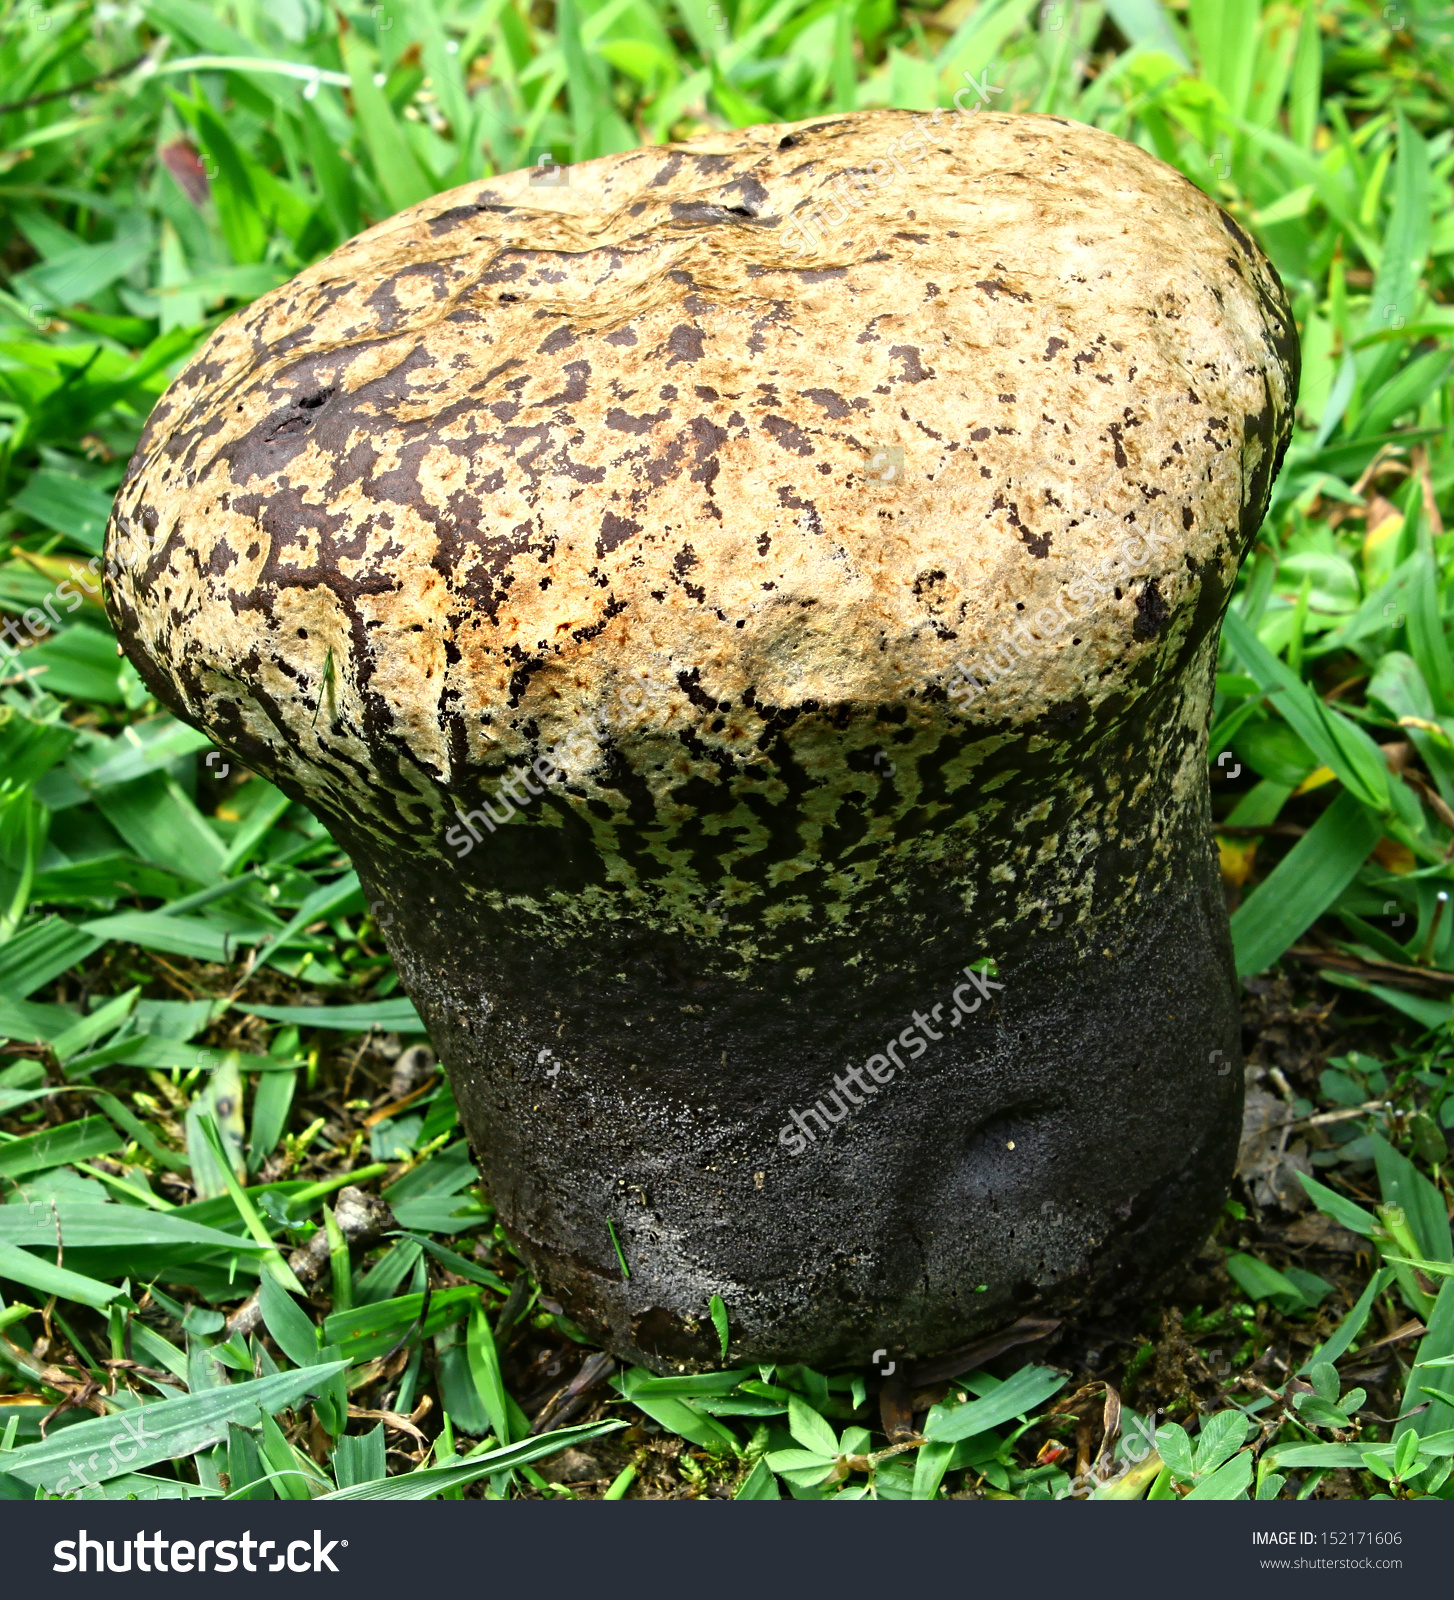 Closeup Of A Large Black And Brown Puffball Mushroom Outside In.